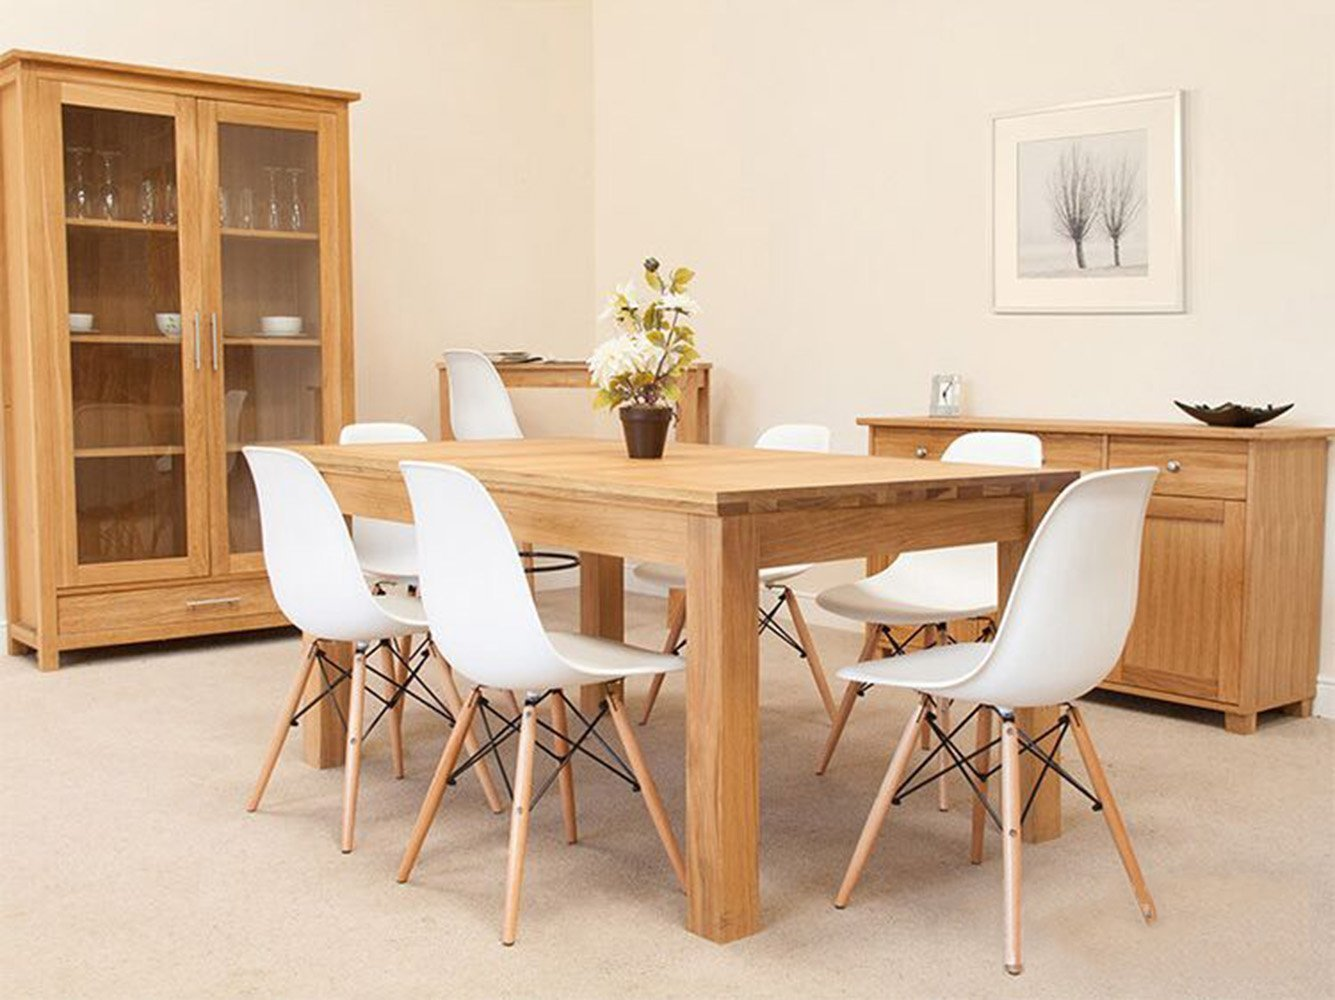 Eames eiffel chair dining room - Amazon Com Greenforest Eames Chair Natural Wood Legs Cushion Seat And Back For Dining Room Chairs Set Of 4 White Chairs